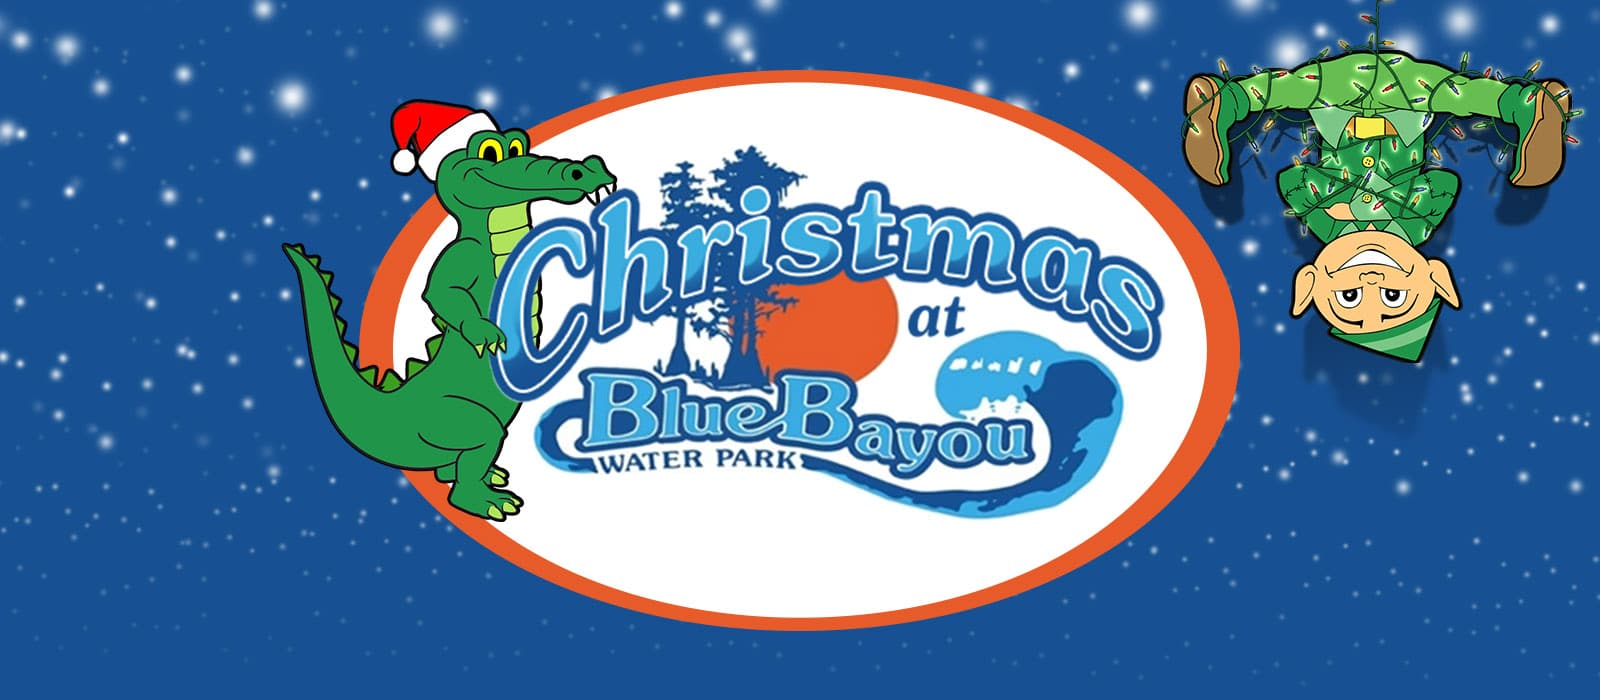 event details come start a new family tradition and drive thru over a mile of custom lights synchronized to music for you to listen to through your own car - Christmas In The Bayou